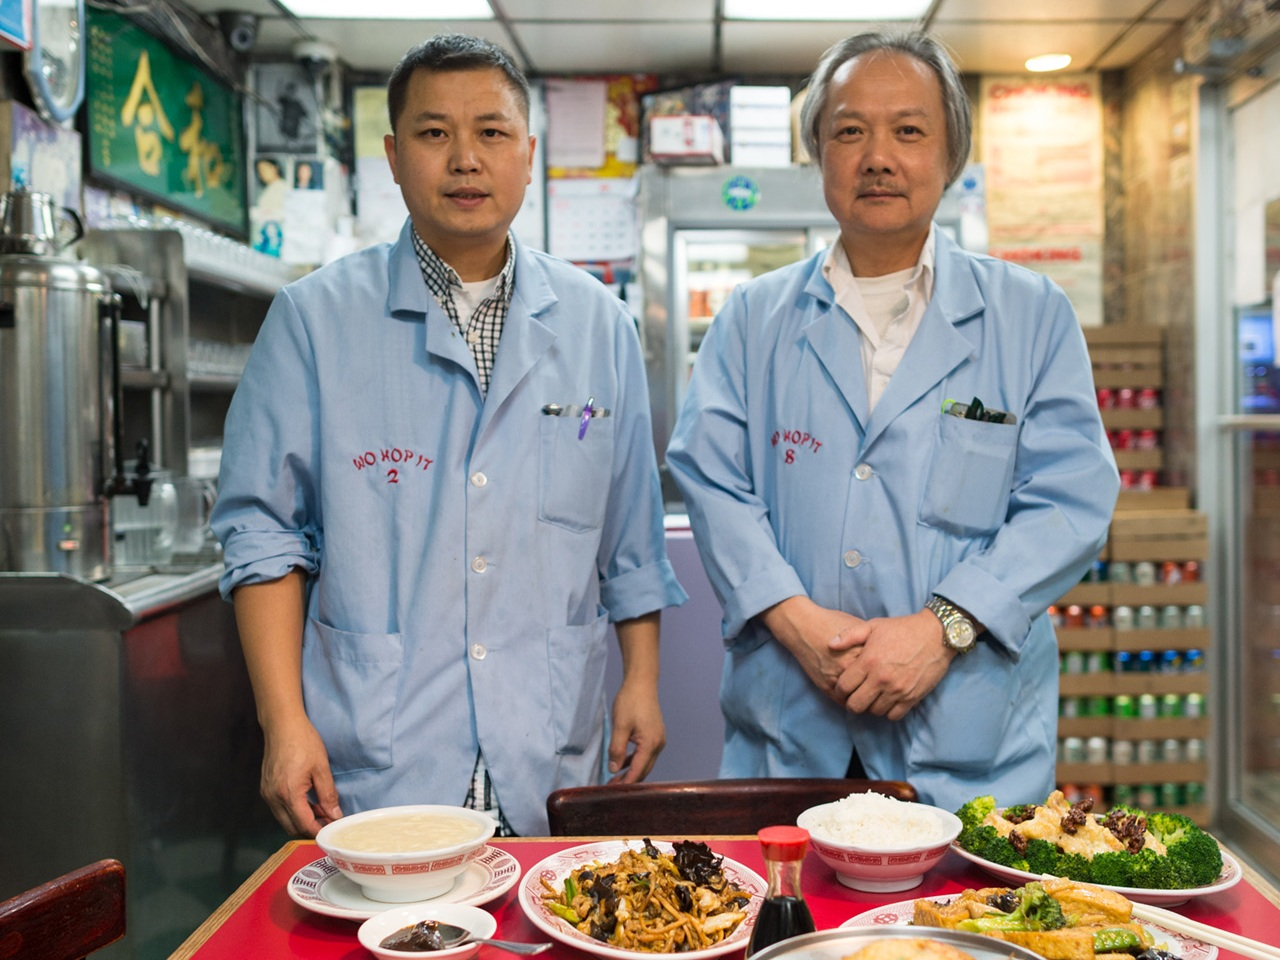 Chow: Making the Chinese American Restaurant — Museum of